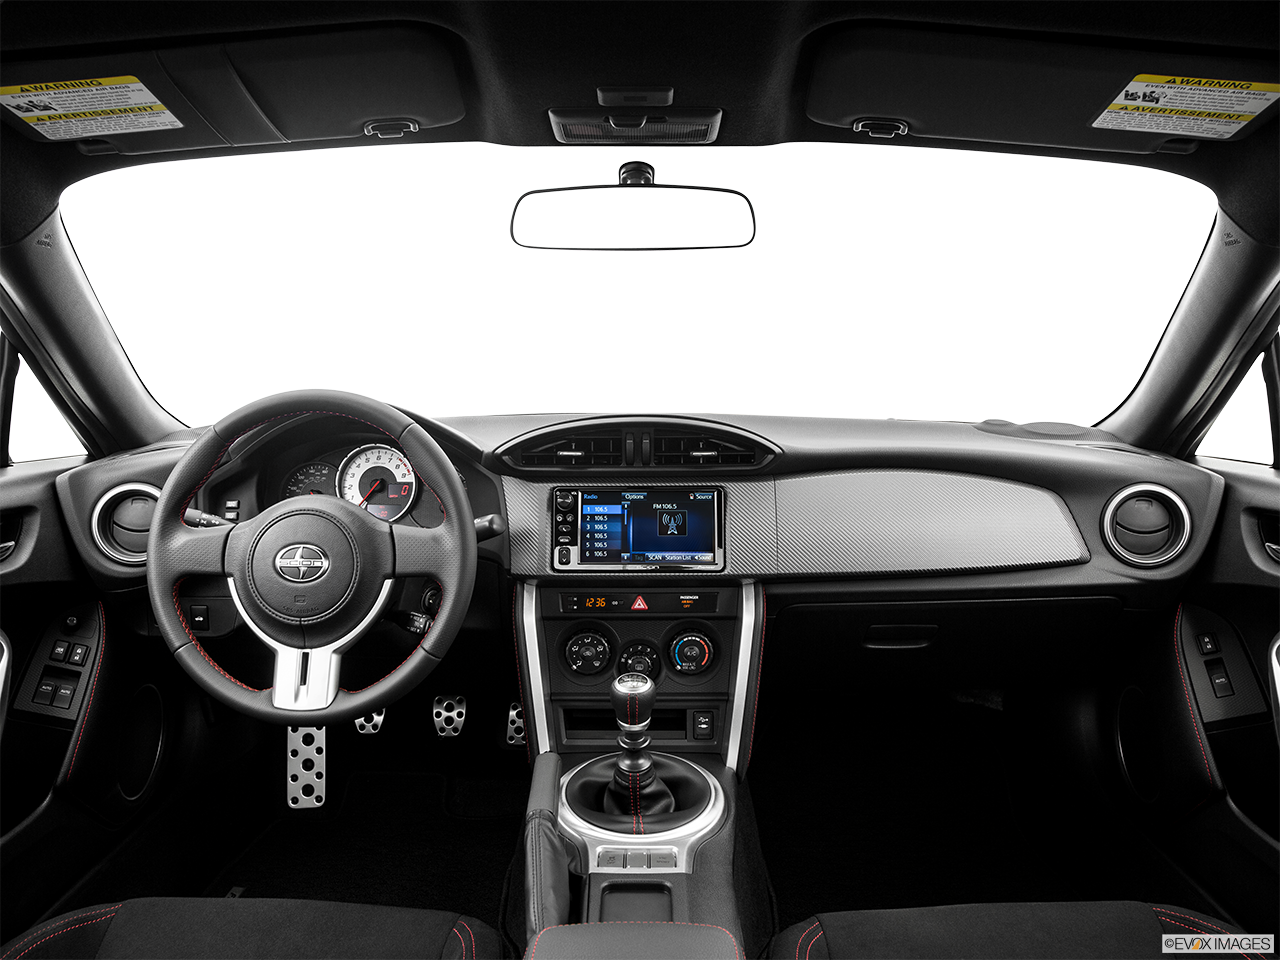 Interior View Of 2016 Scion FR-S Riverside